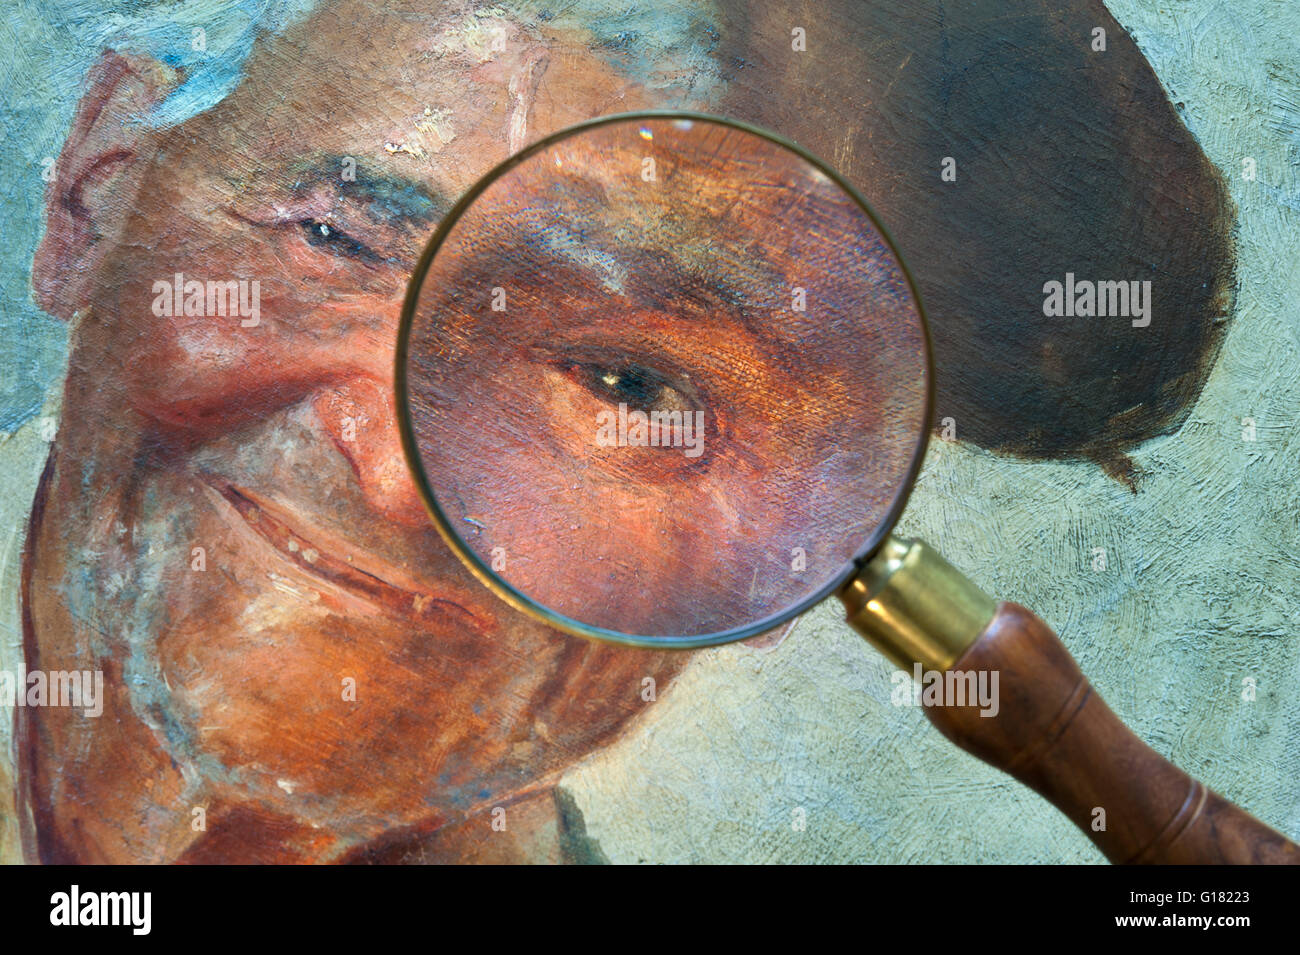 Magnifying glass enlarging detail on eye of original 19th Century Italian oil painting of bright alert happy Neapolitan - Stock Image